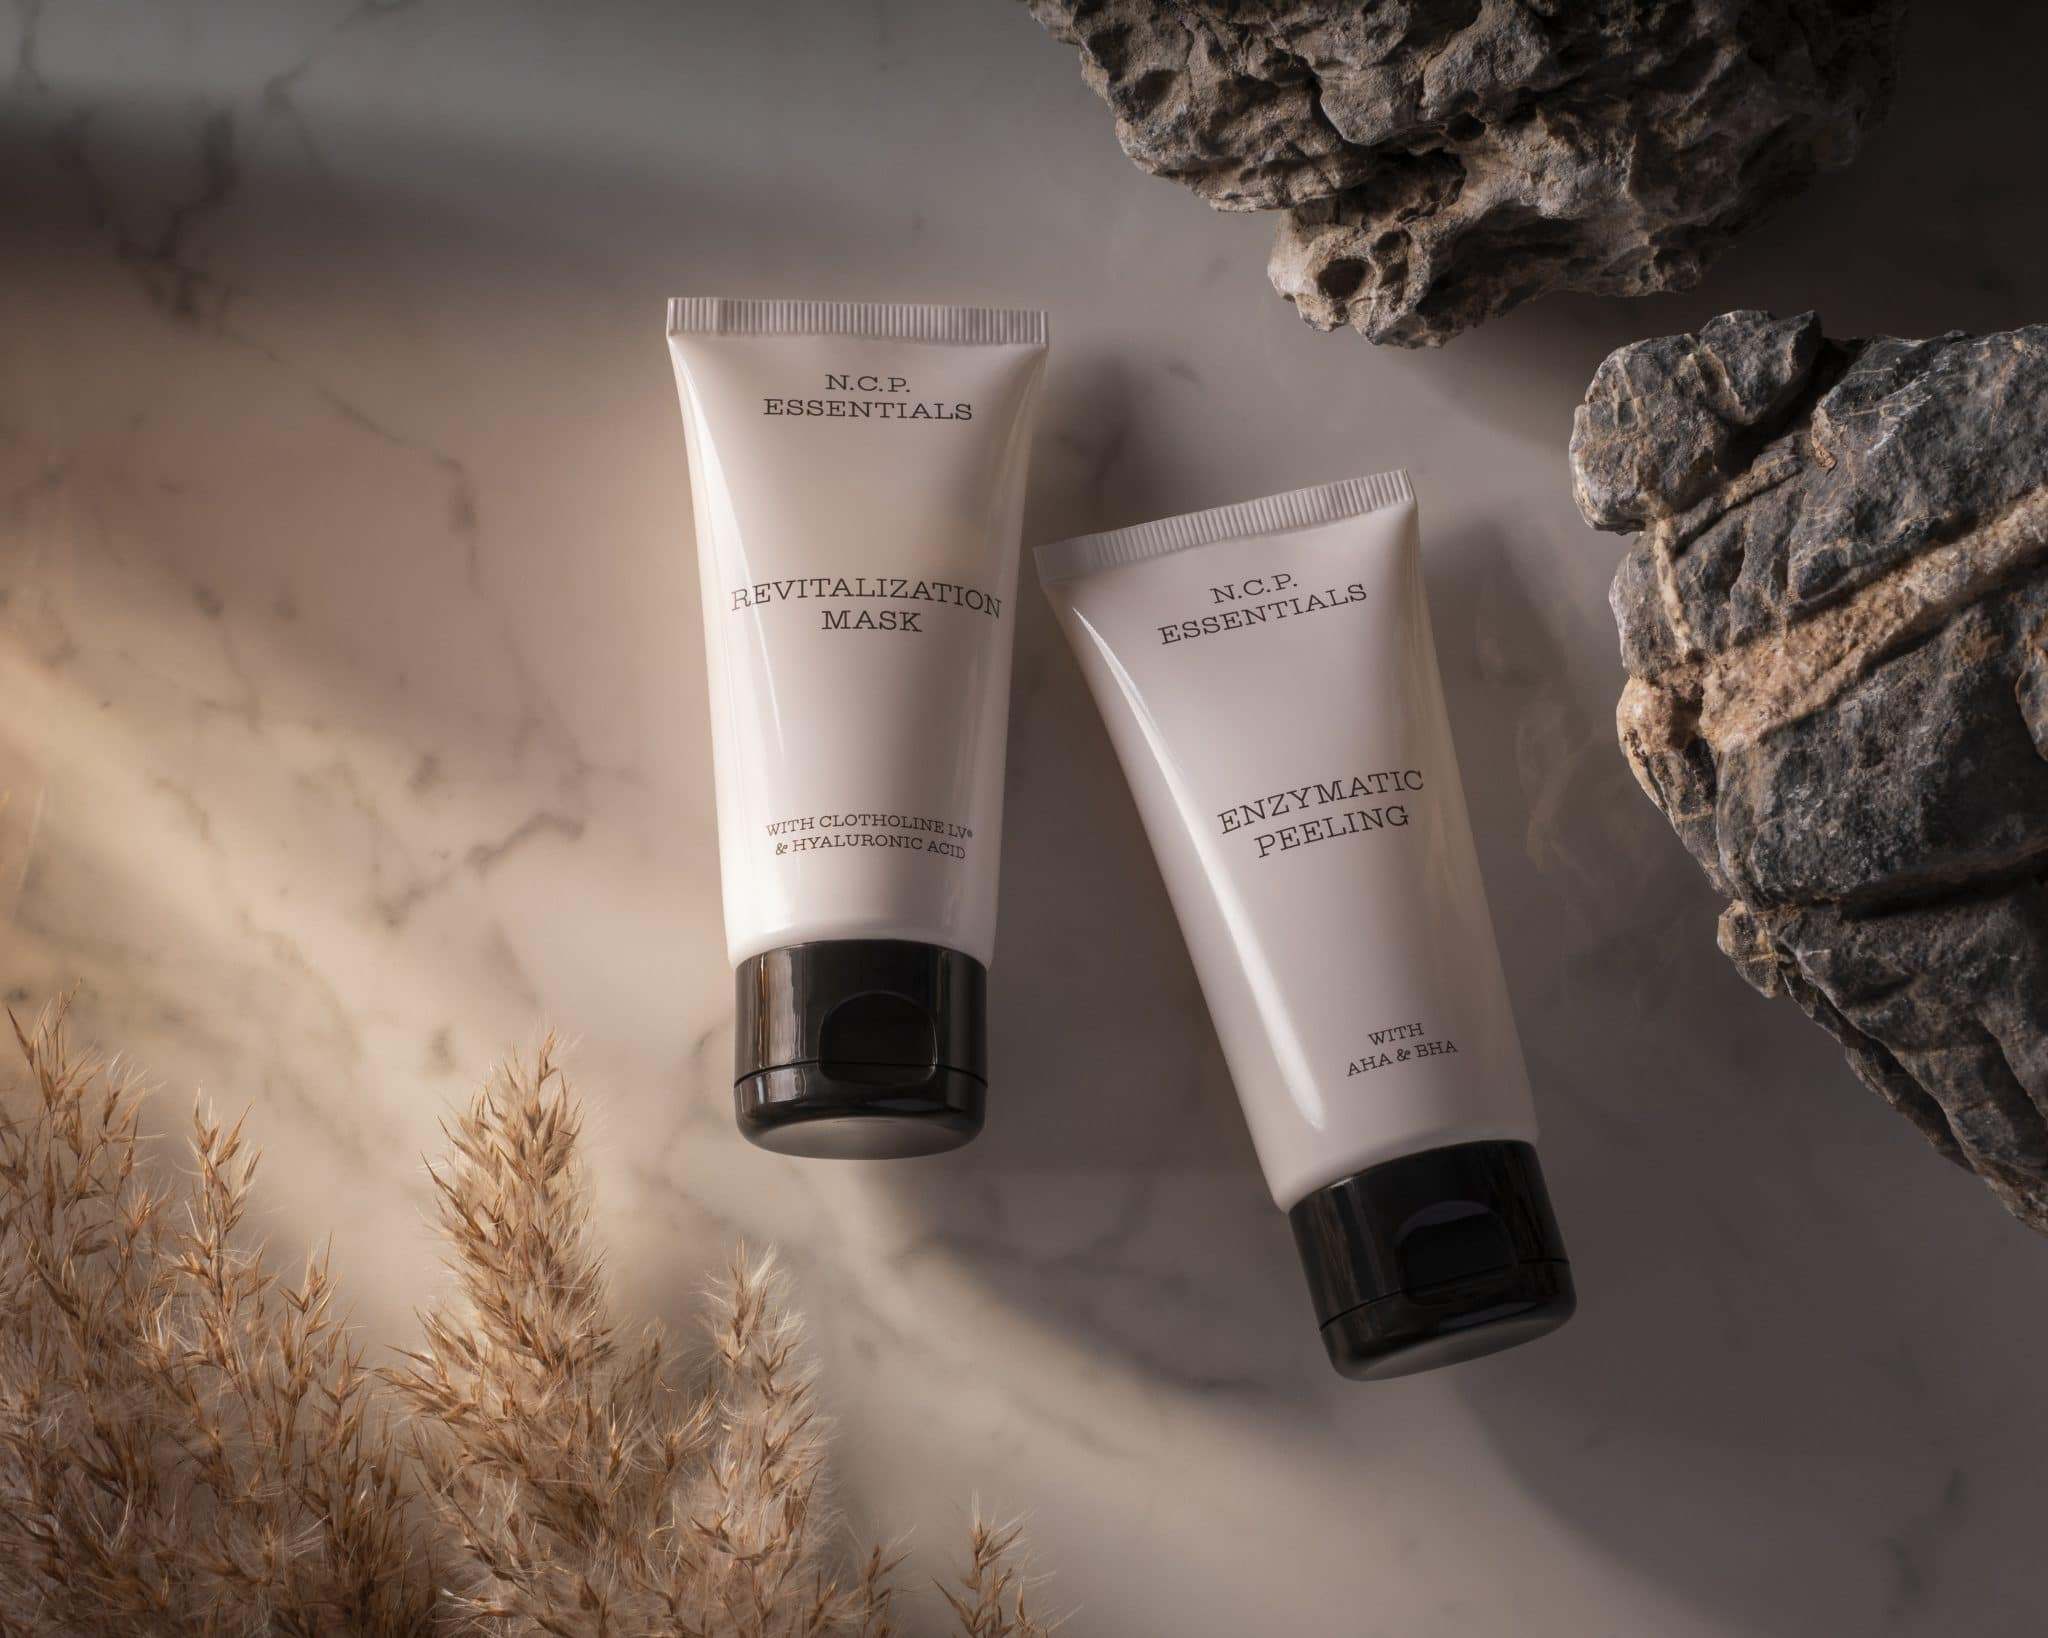 Vegan & fragrance free skincare from N.C.P. Glowing kit with Revitalization Mask a white bottle with black text and black cap & Enzymatic Peeling a white bottle with black text and black cap. Products laying down on a marble background. Stone and dry grass.